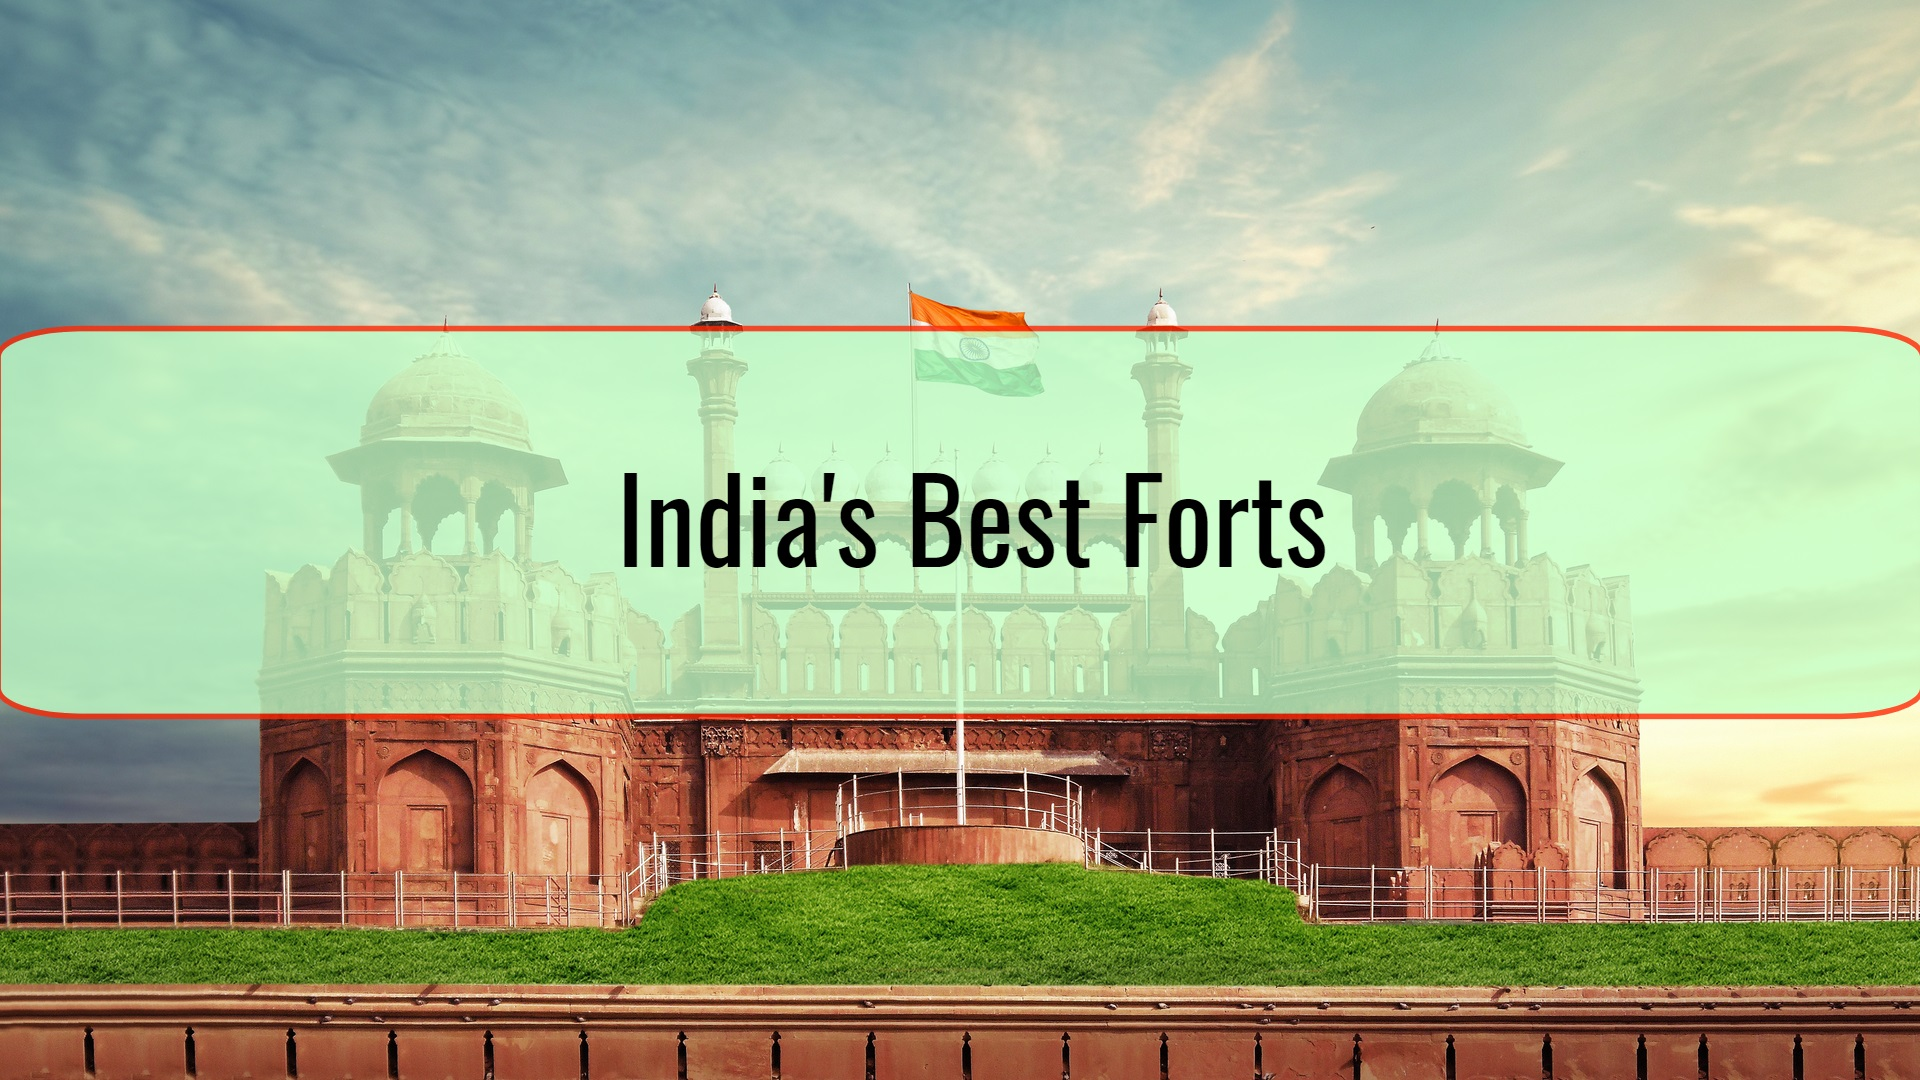 India's Best Forts